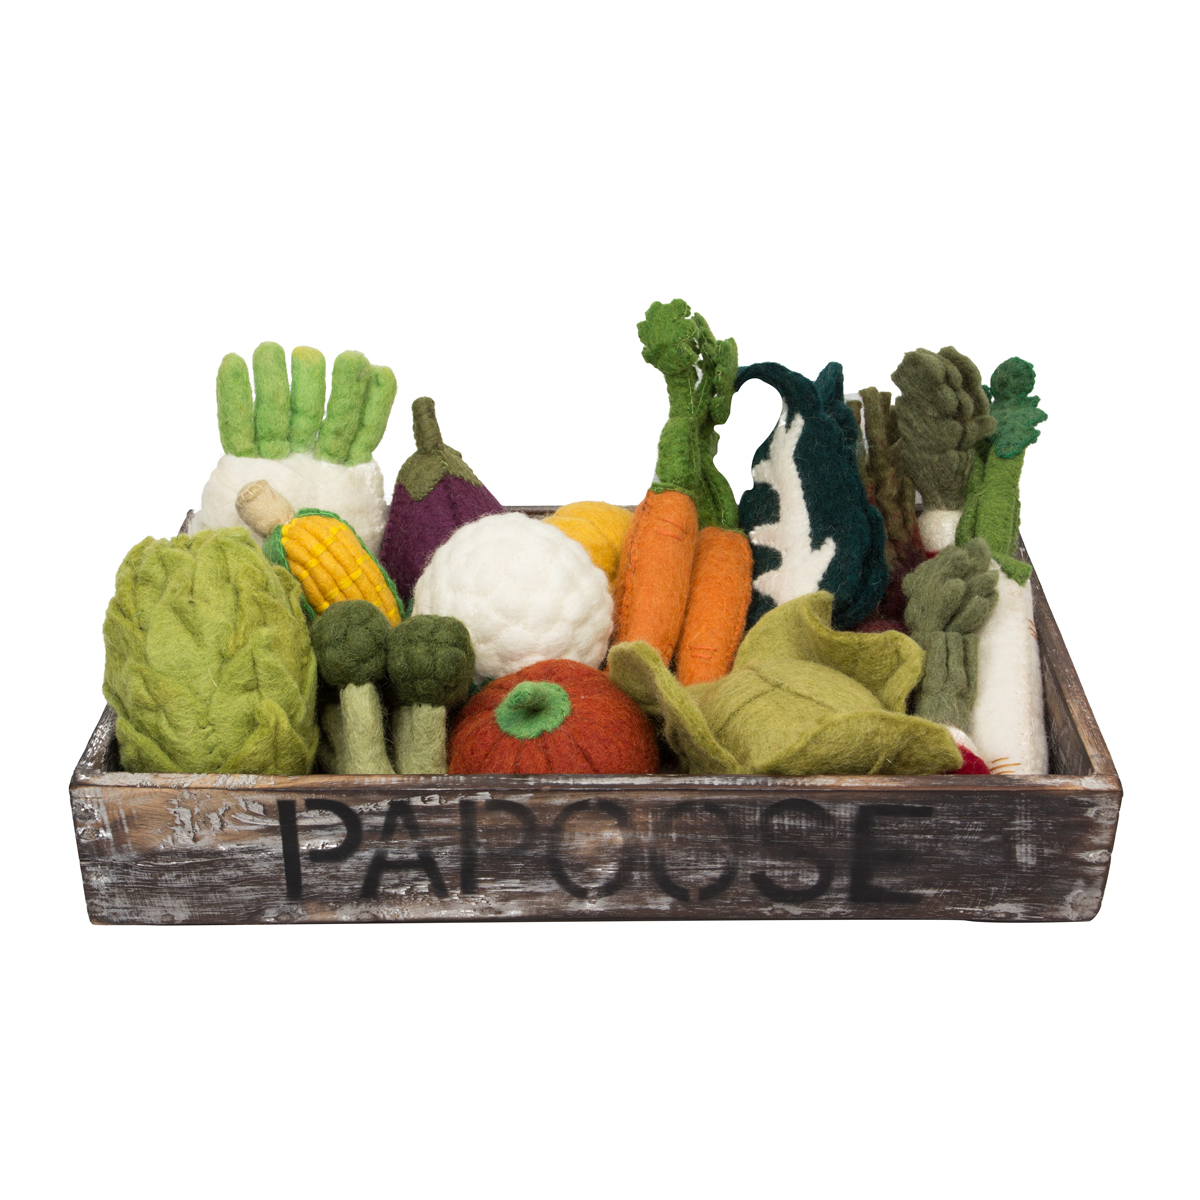 Papoose Vegetable Tray